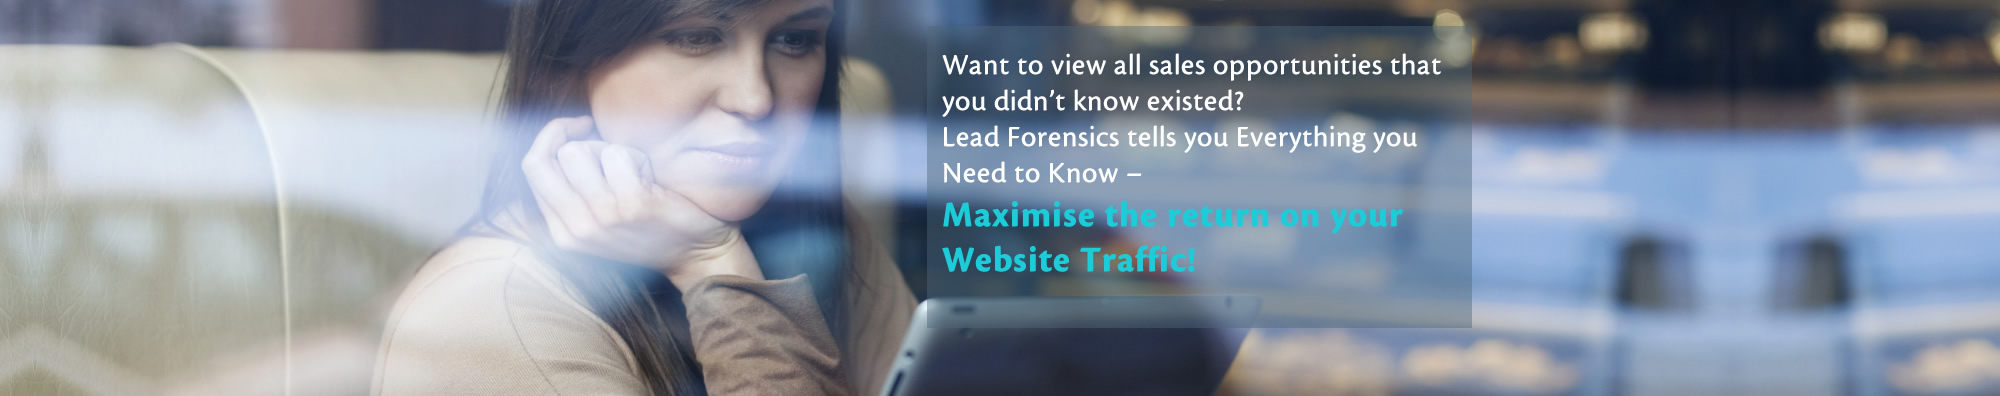 What to view all sales opportunities that you didn't know existed? Lead Forensics tells you Everything you Need to Know – Maximise the return on your Website Traffic!